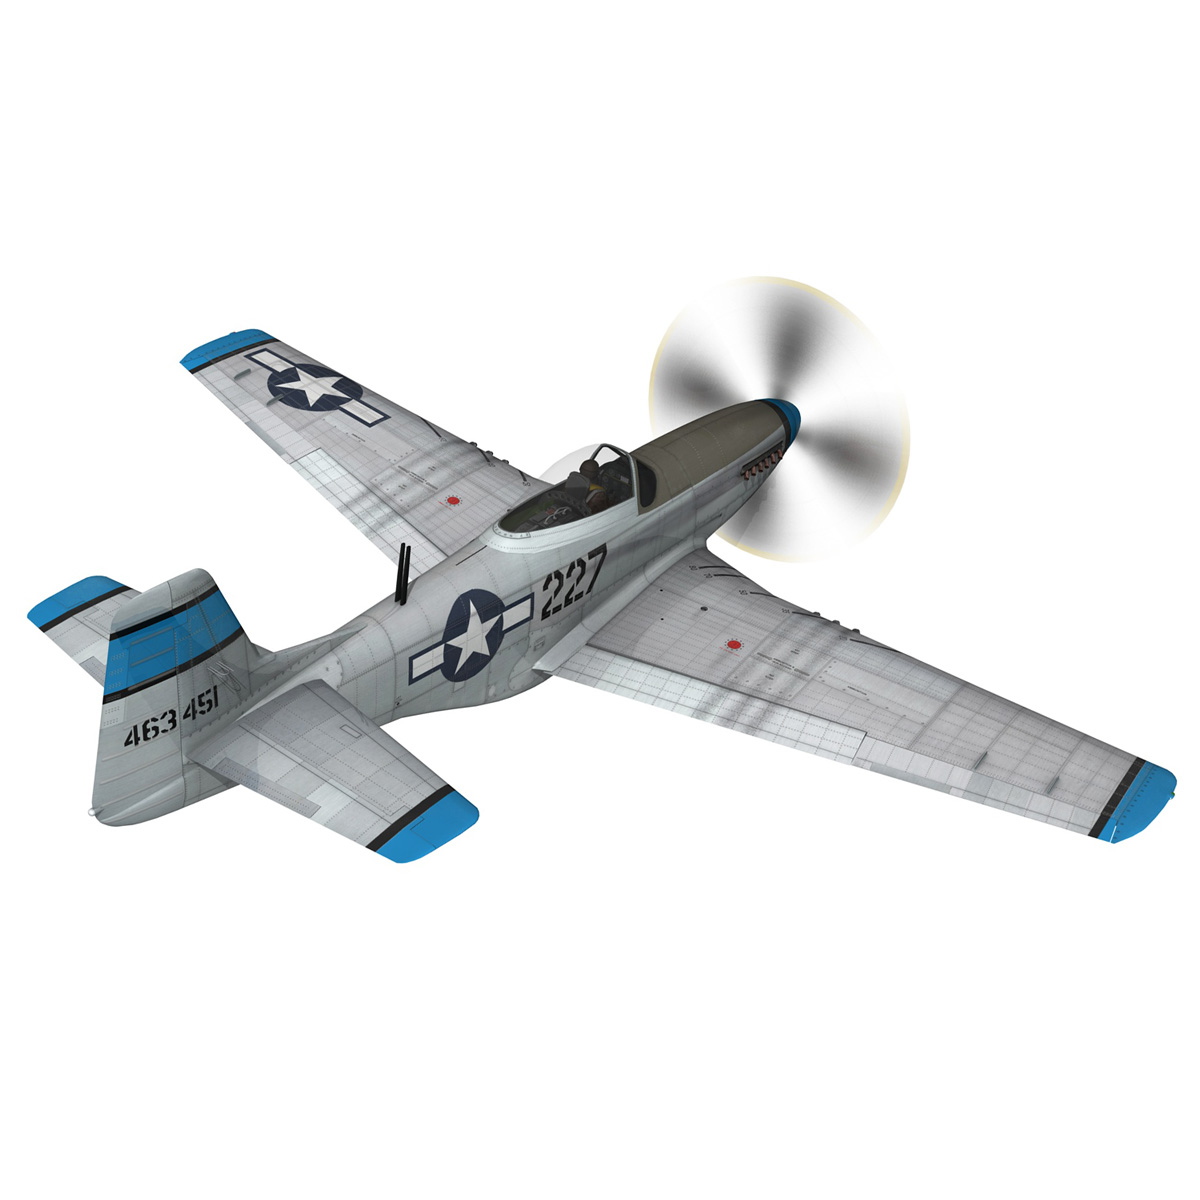 north american p-51d – mustang – mary alyce 3d model 3ds fbx c4d lwo obj 267571